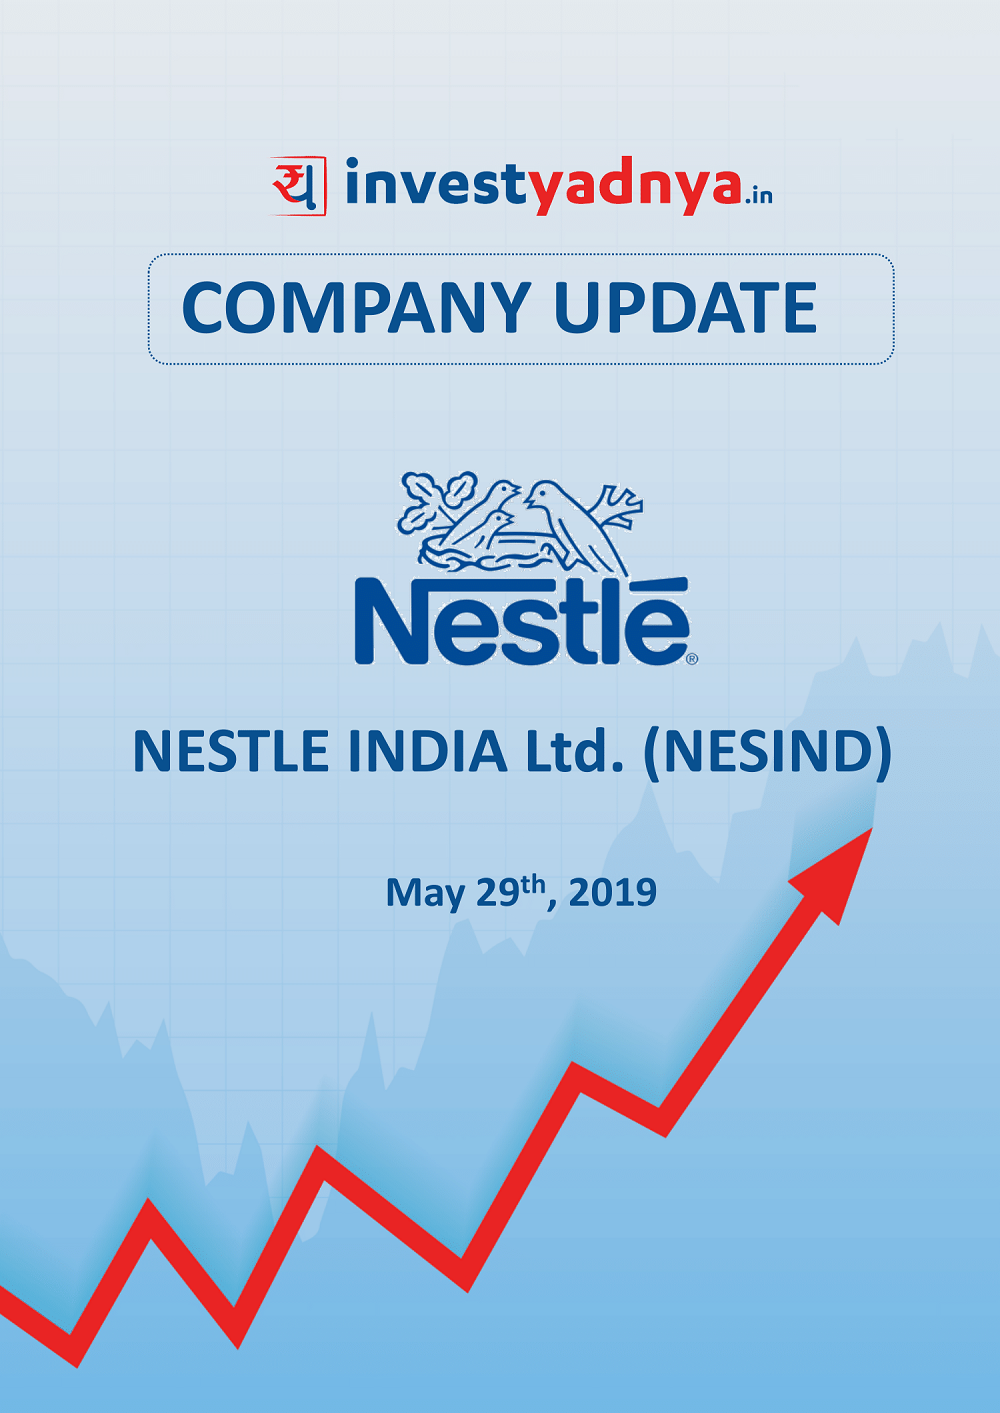 Nestle India Ltd is a Short and sweet analysis of the company which contains a brief overview about the company both from a qualitative and financial perspective.